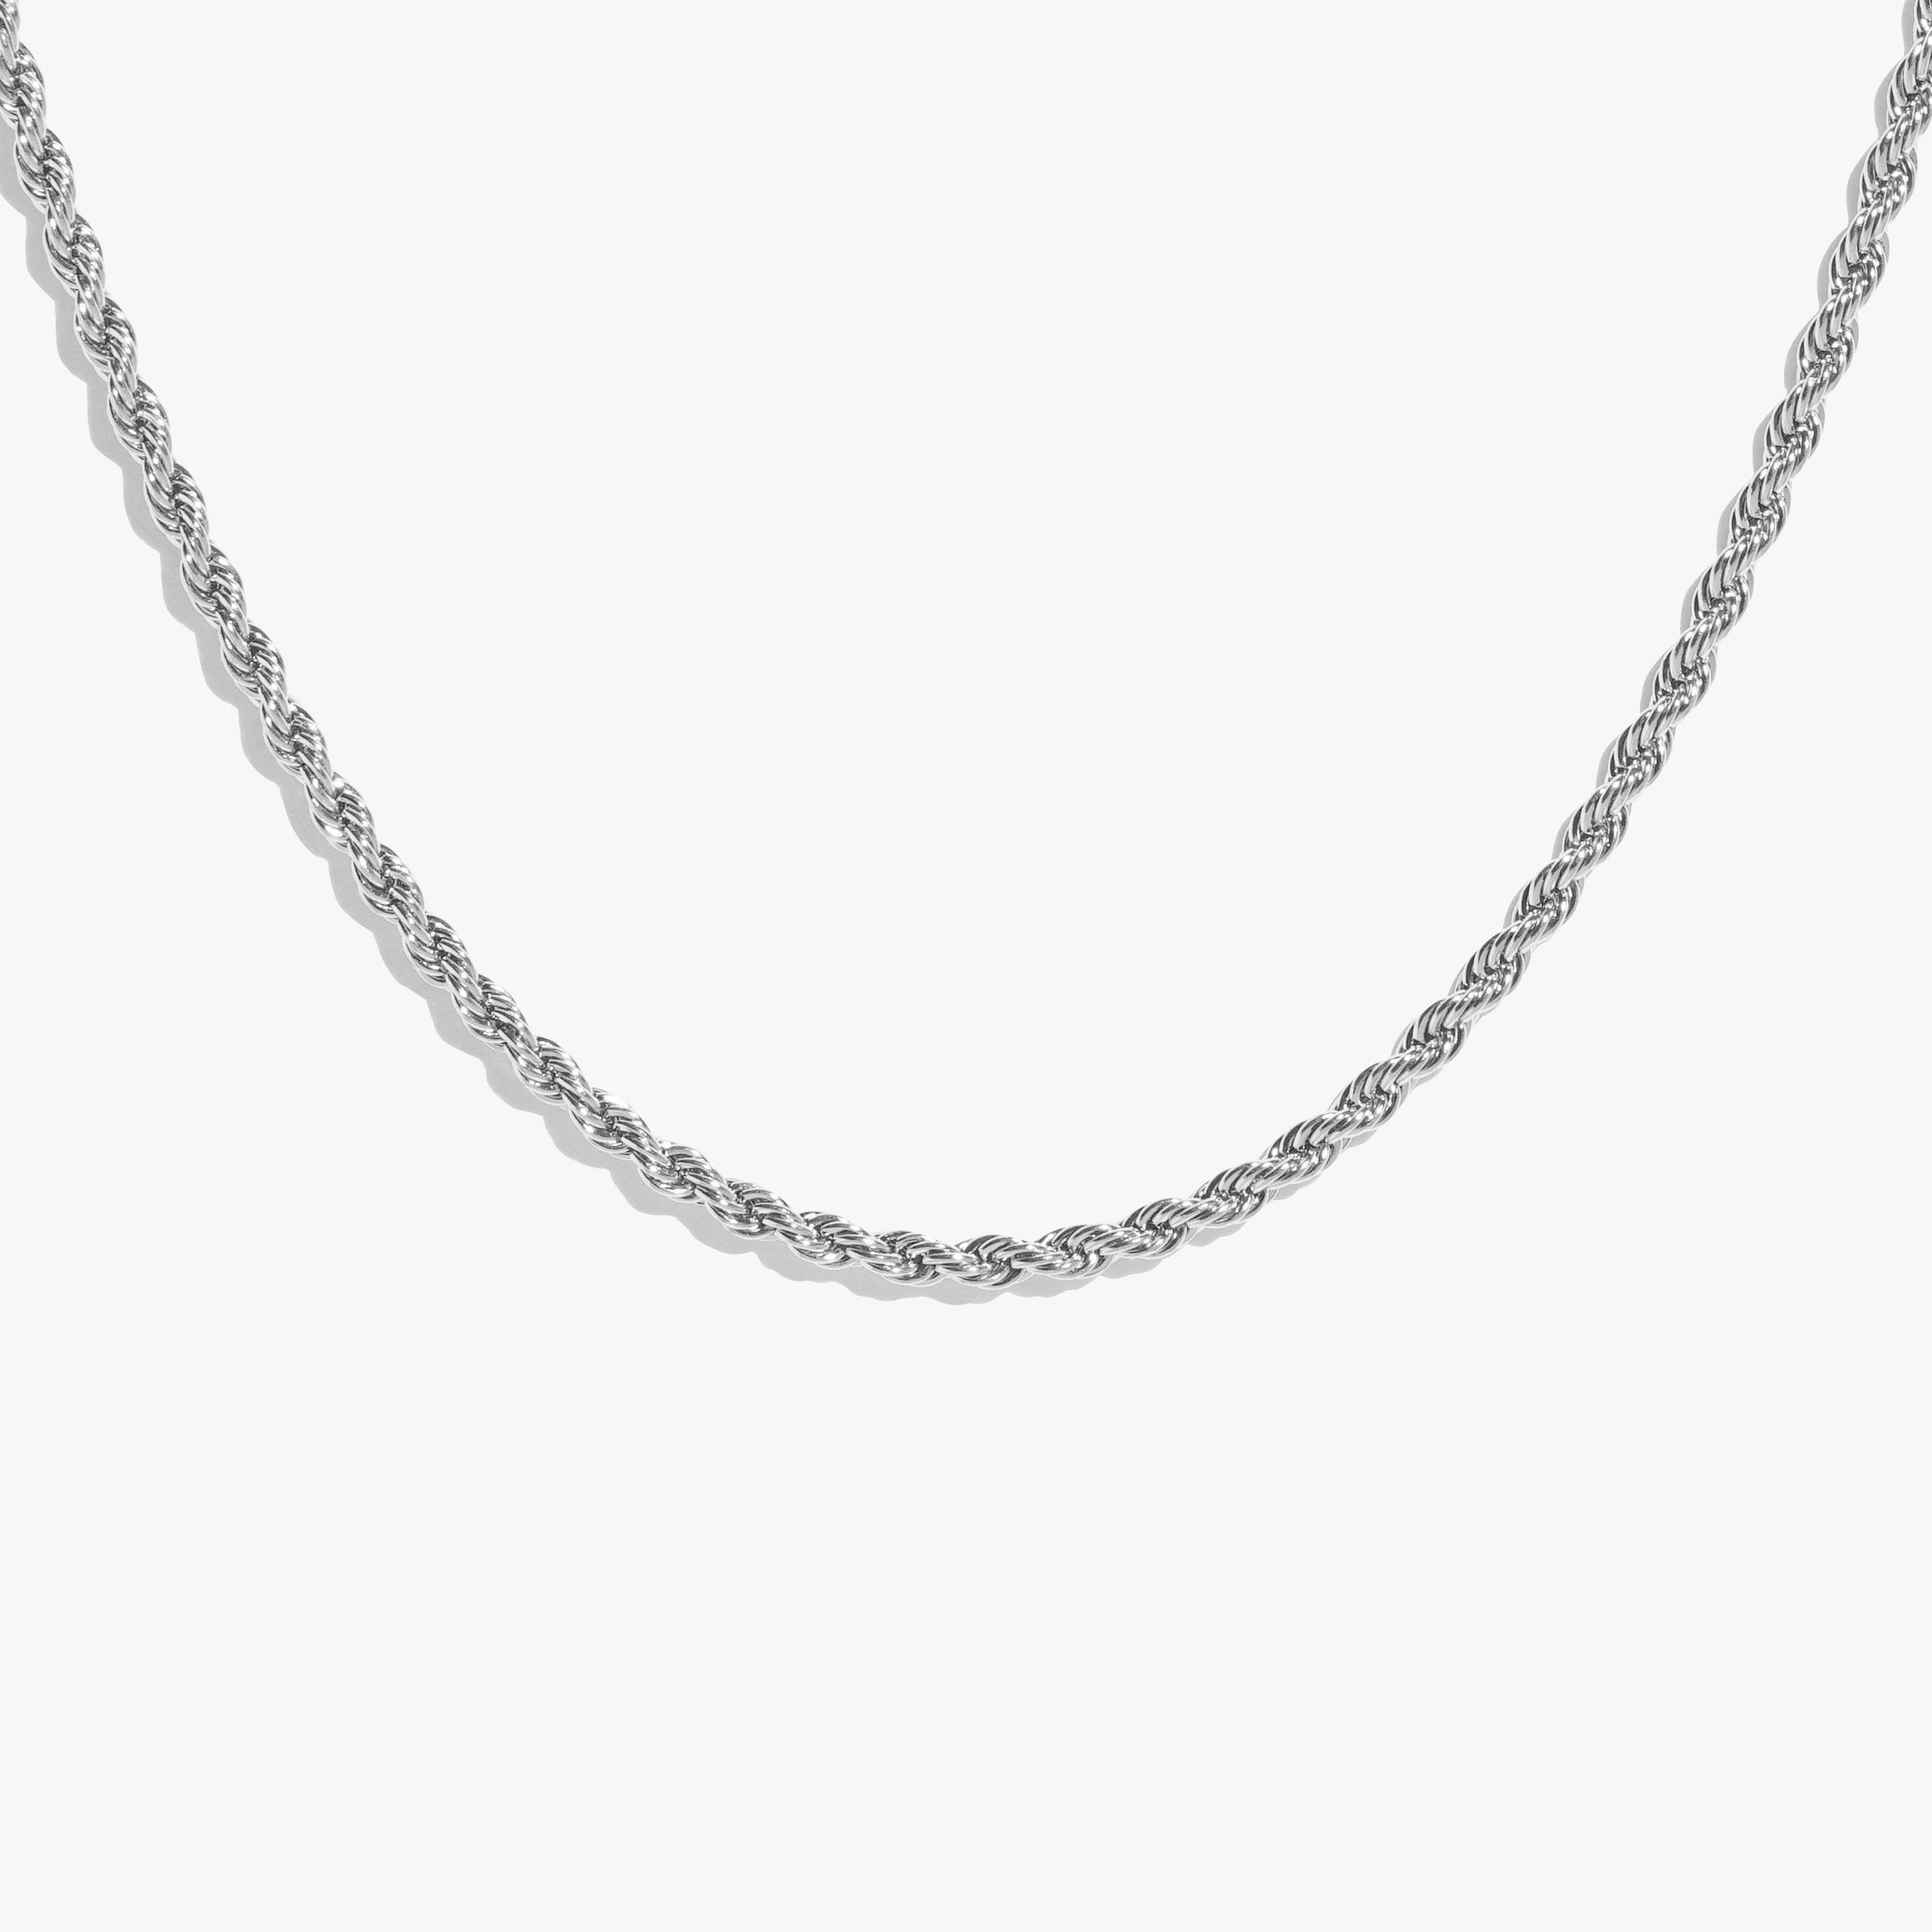 Chains - Rope Chain - Silver